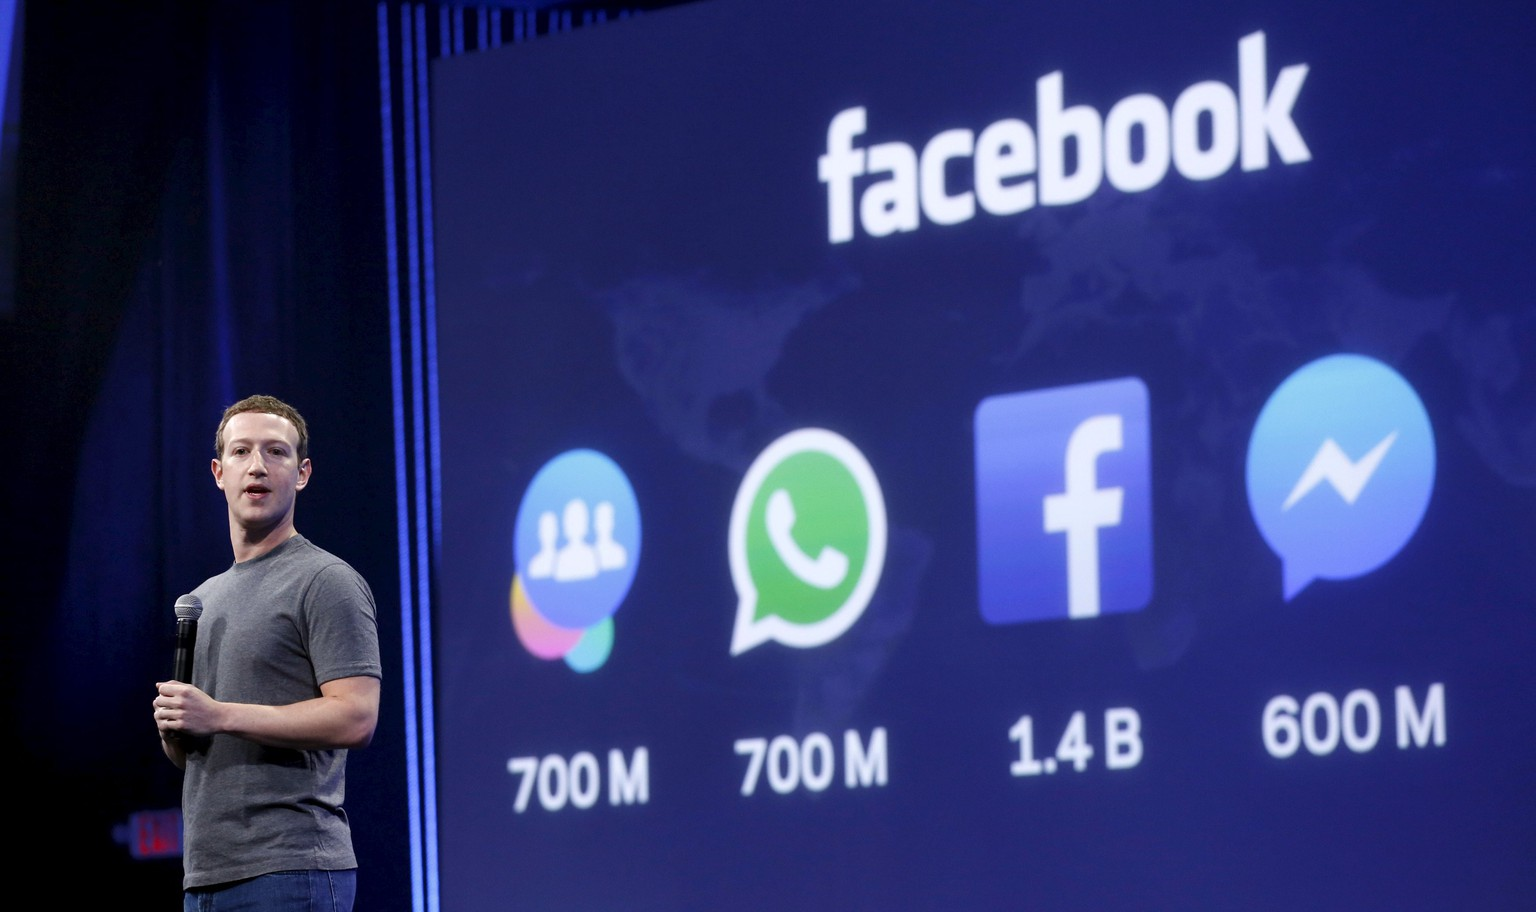 Facebook CEO Mark Zuckerberg speaks during his keynote address at Facebook F8 in San Francisco, California, in this file photo taken March 25, 2015. Facebook Inc posted its slowest growth in quarterly revenue in two years and higher spending on research and development ate into profits. Shares of the world's largest Internet social network fell 2.4 percent in after-market trading on April 22, 2015.  REUTERS/Robert Galbraith/Files